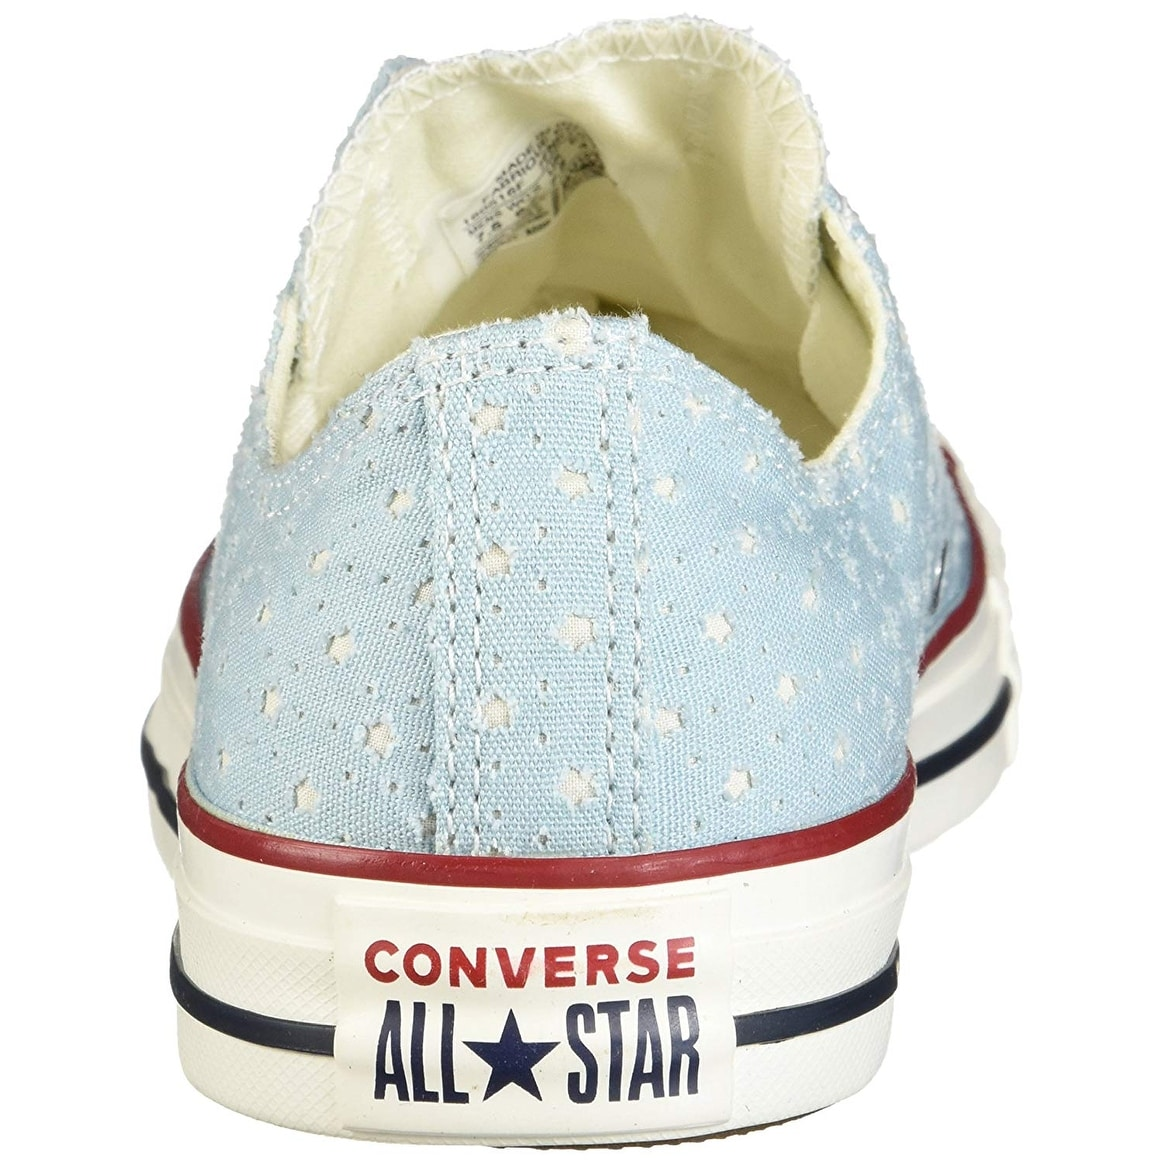 6012a08e19c5 Shop Converse Mens Perforated Stars Low Top Lace Up Fashion Sneakers - Free  Shipping On Orders Over  45 - Overstock - 26269025